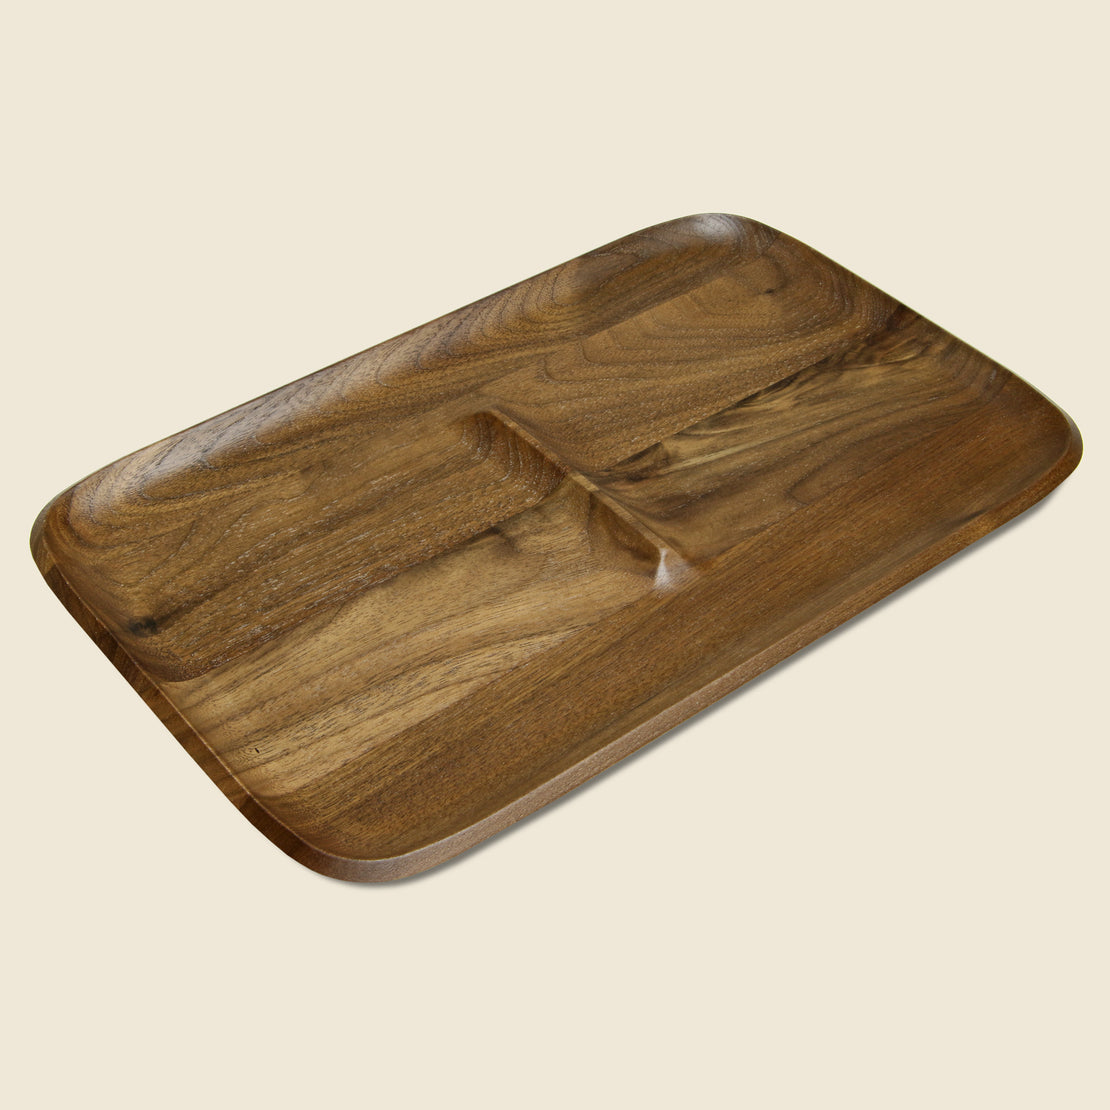 Craighill Large Catch Tray - Walnut